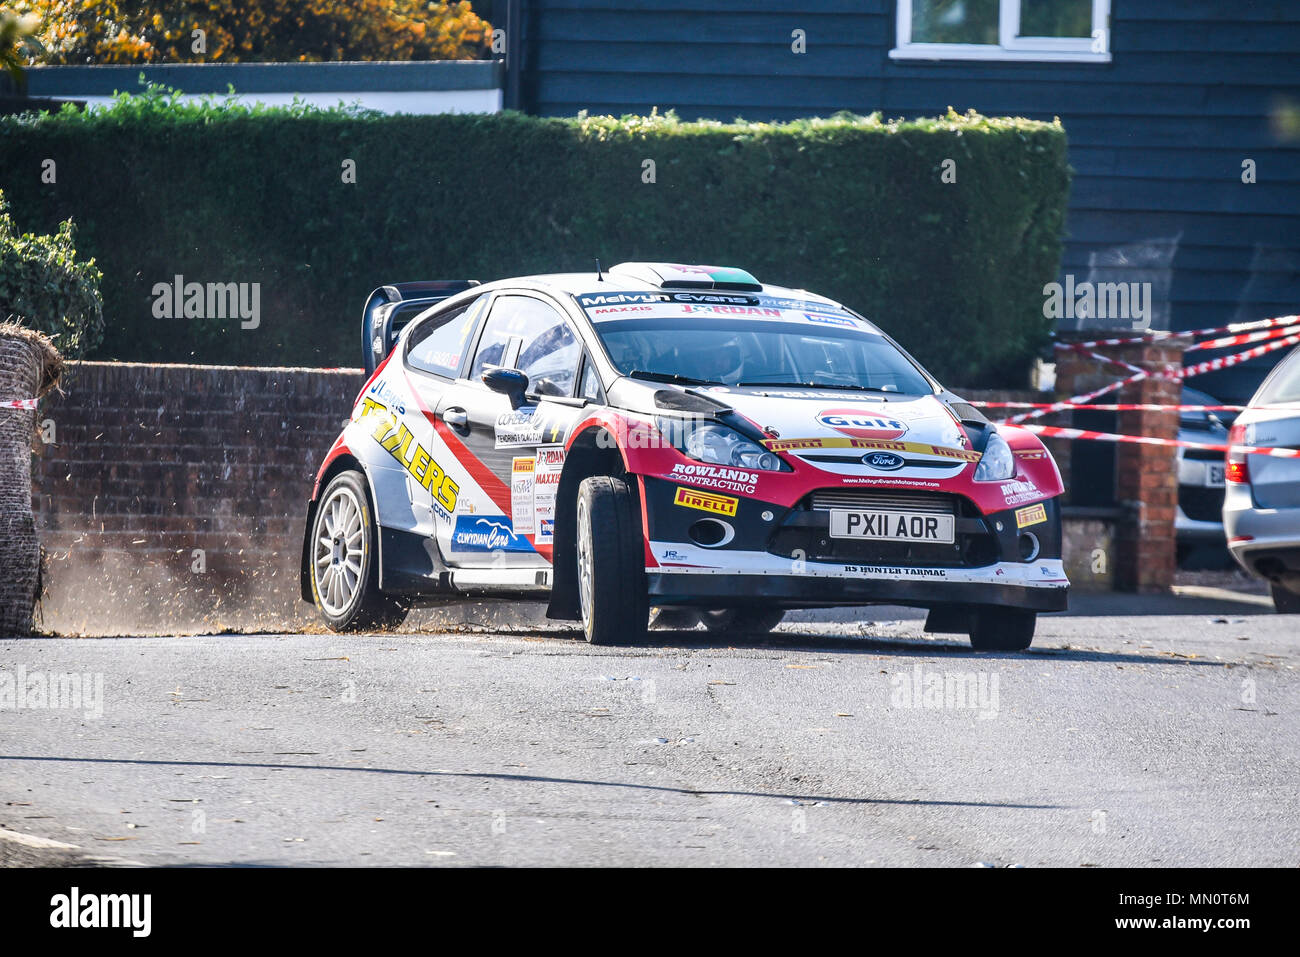 Hugh Hunter driver Rob Flagg co driver racing Ford Fiesta WRC in the closed public road Corbeau Seats car Rally Tendring and Clacton, Essex, UK - Stock Image